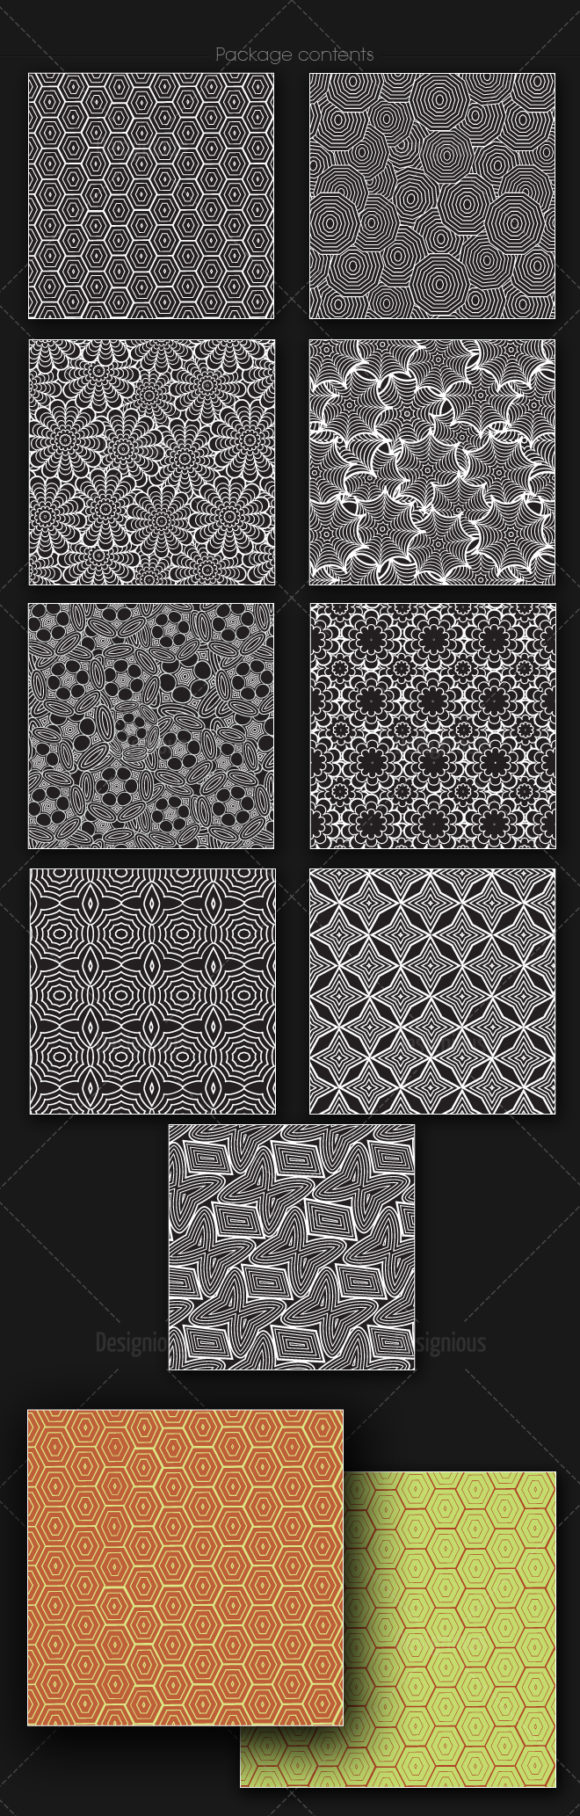 Seamless Patterns Vector Pack 165 6